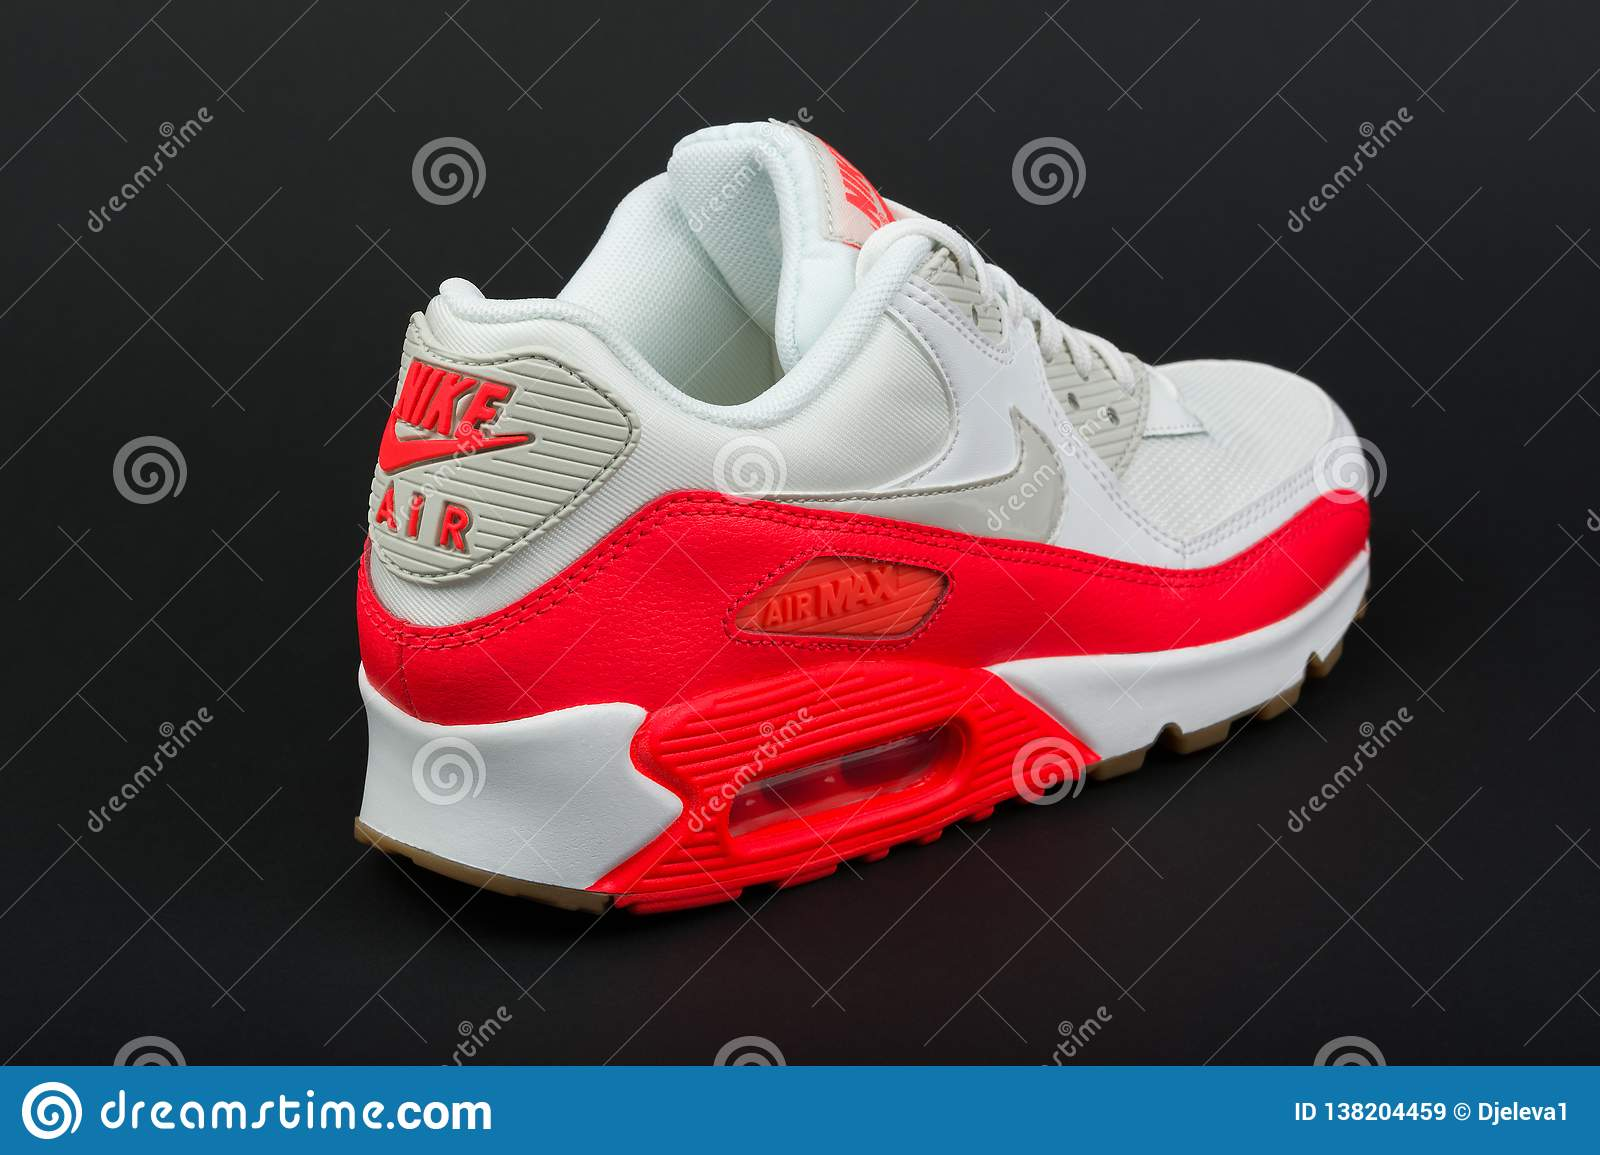 new collection first rate hot sale online chaussure nike